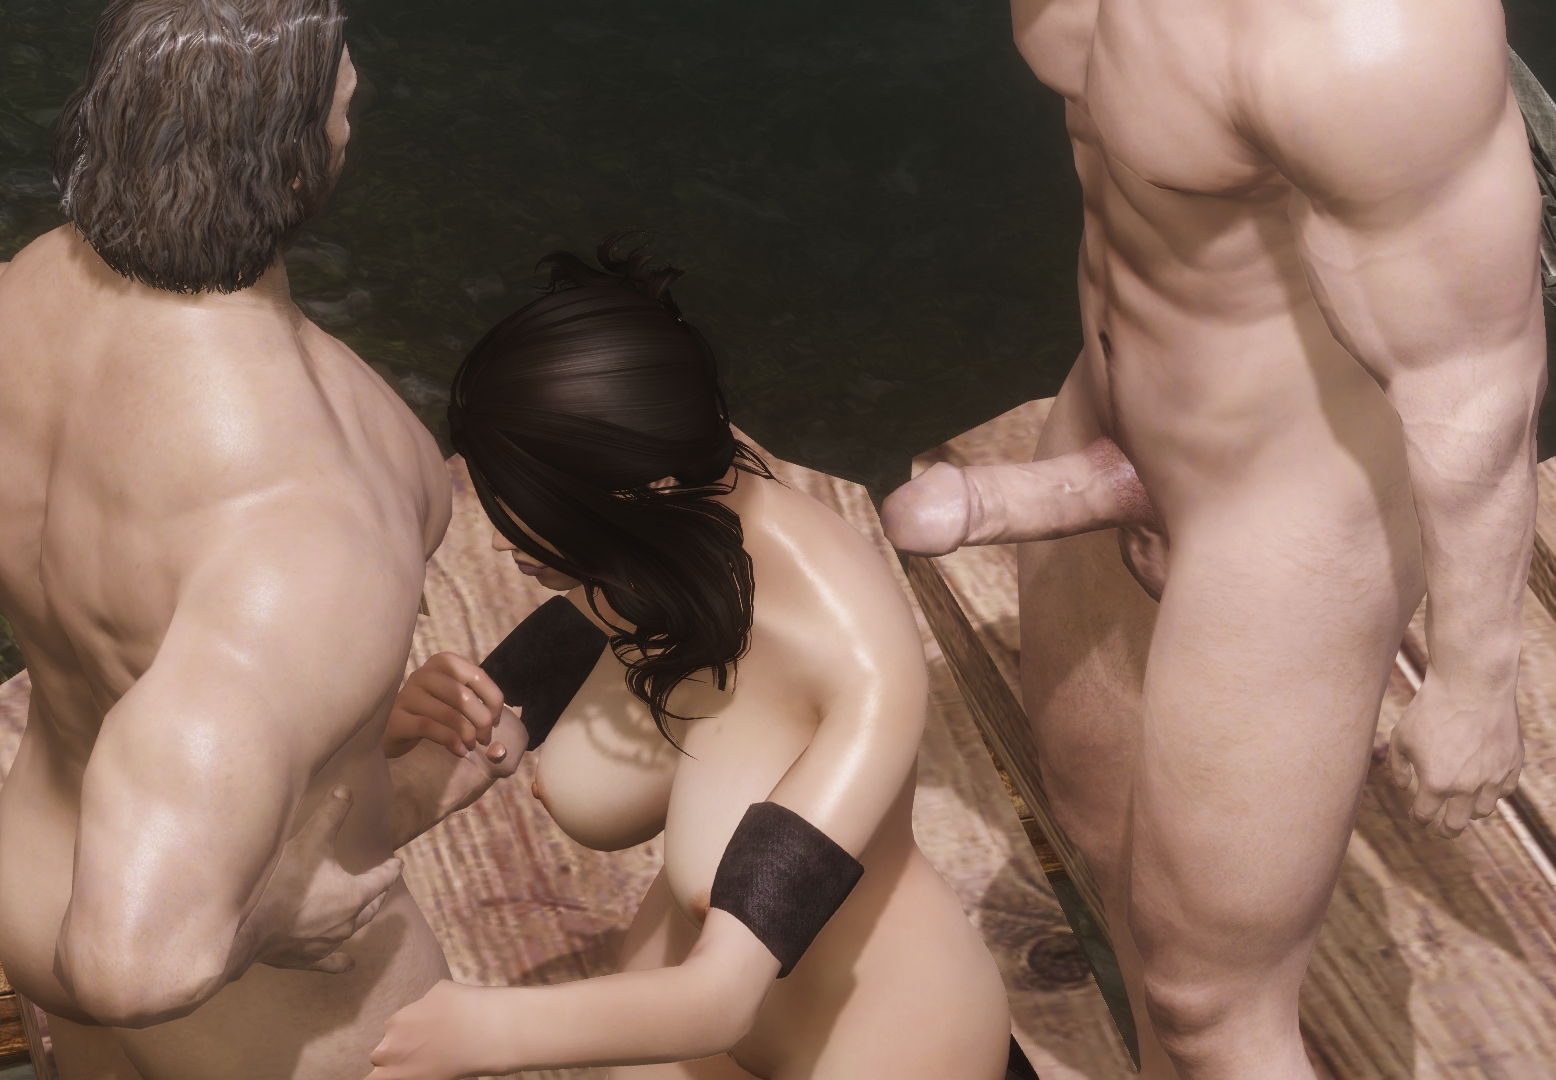 Fucking sex skyrim pictures sexy galleries